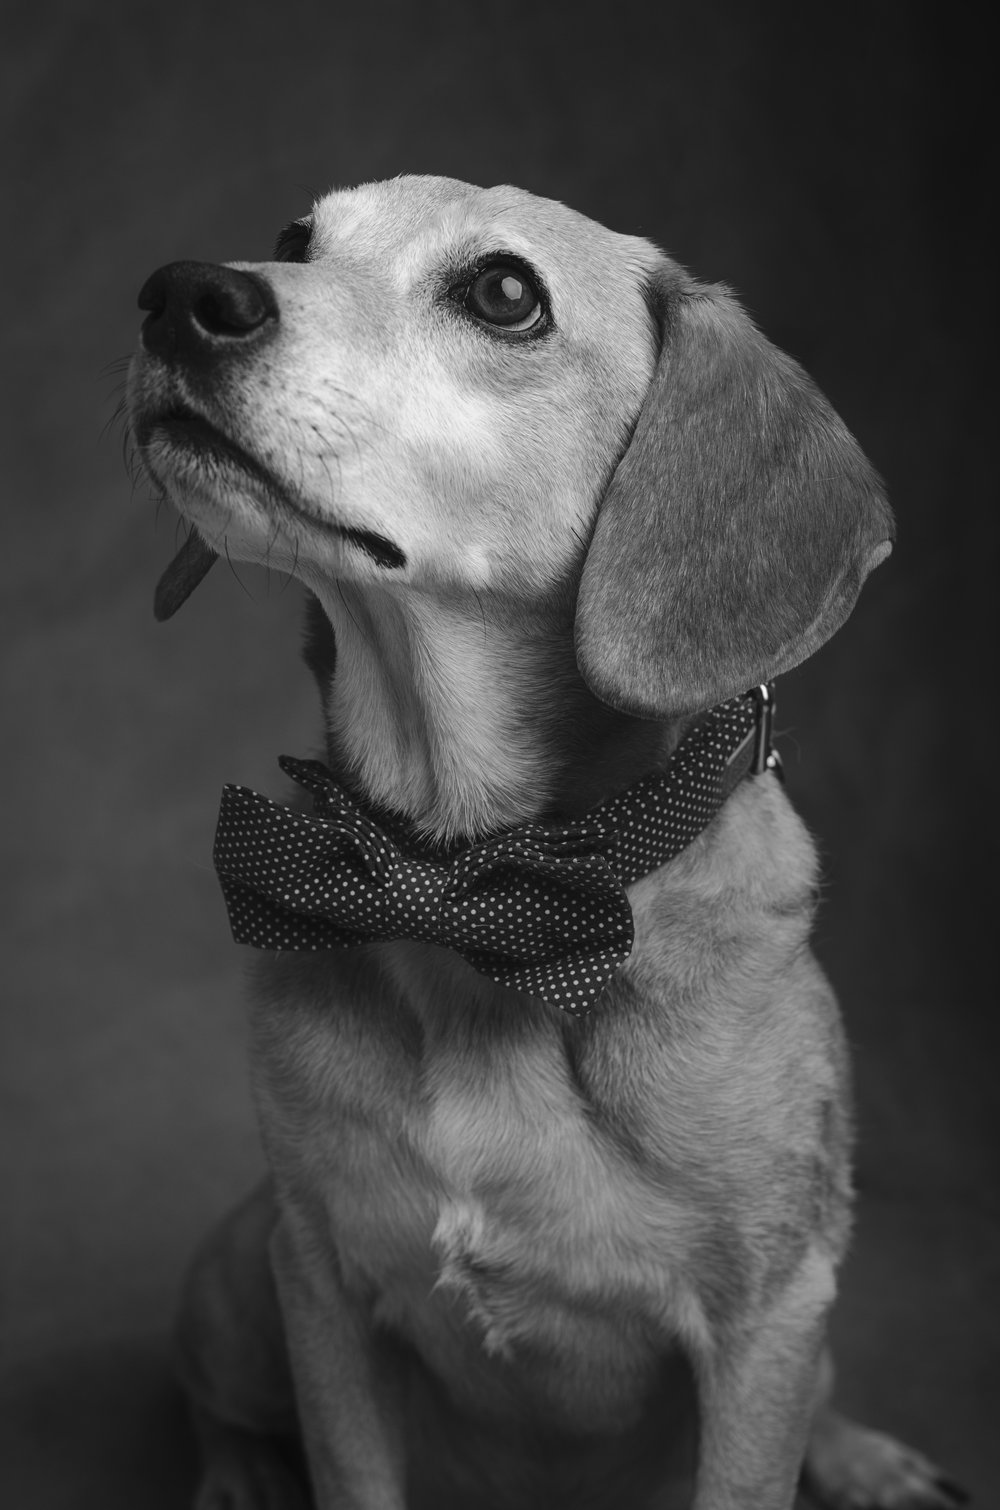 Charlie-decatur il dog photographer.jpg